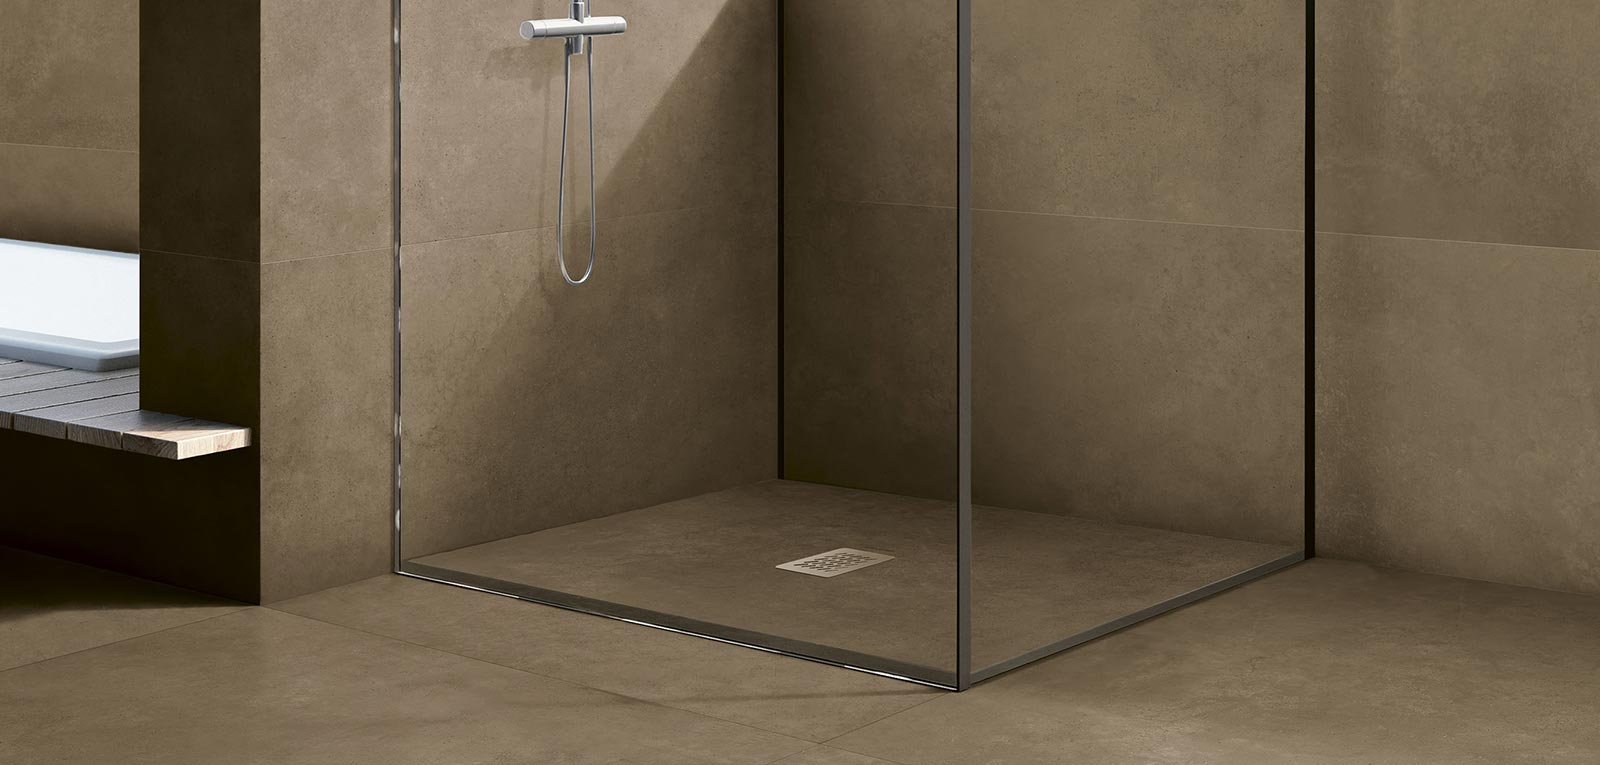 tagina-concreta-bathroom